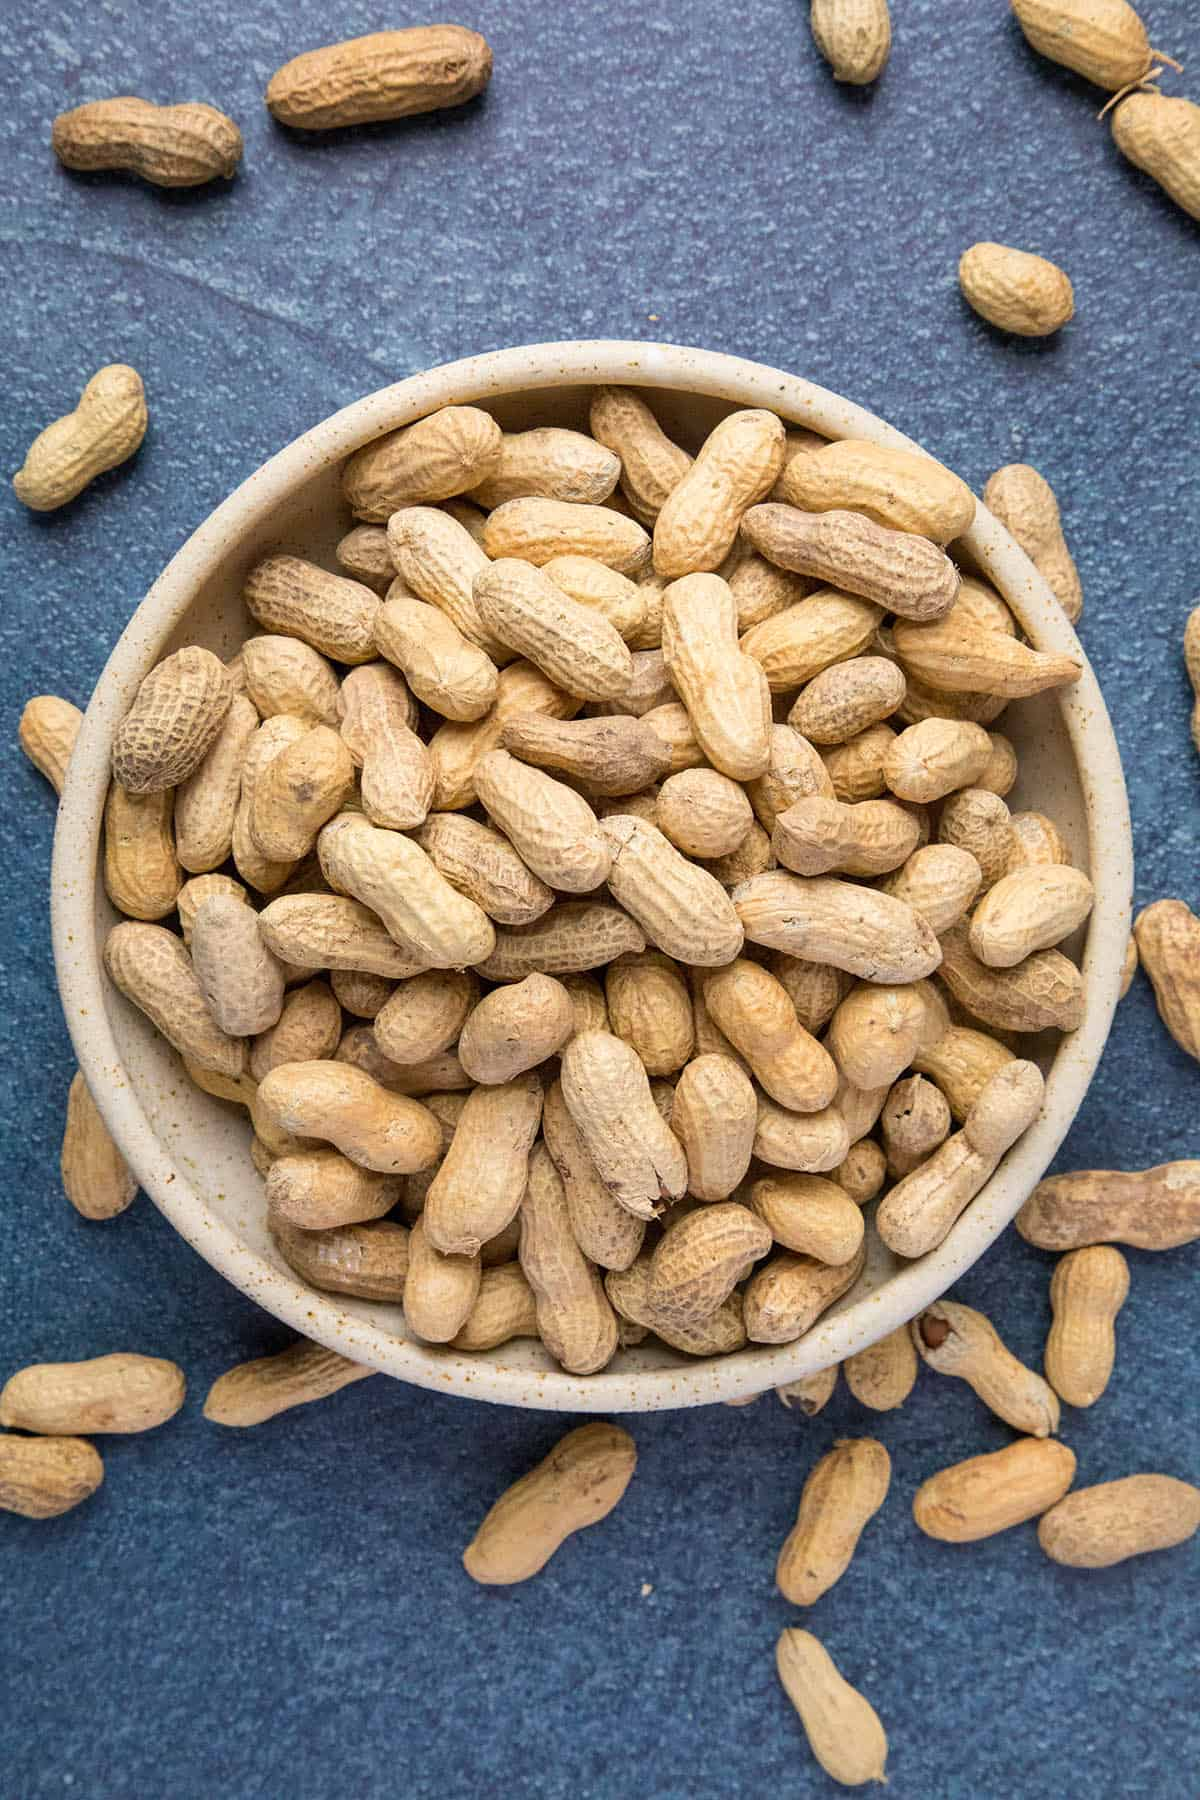 Raw green peanuts in a bowl